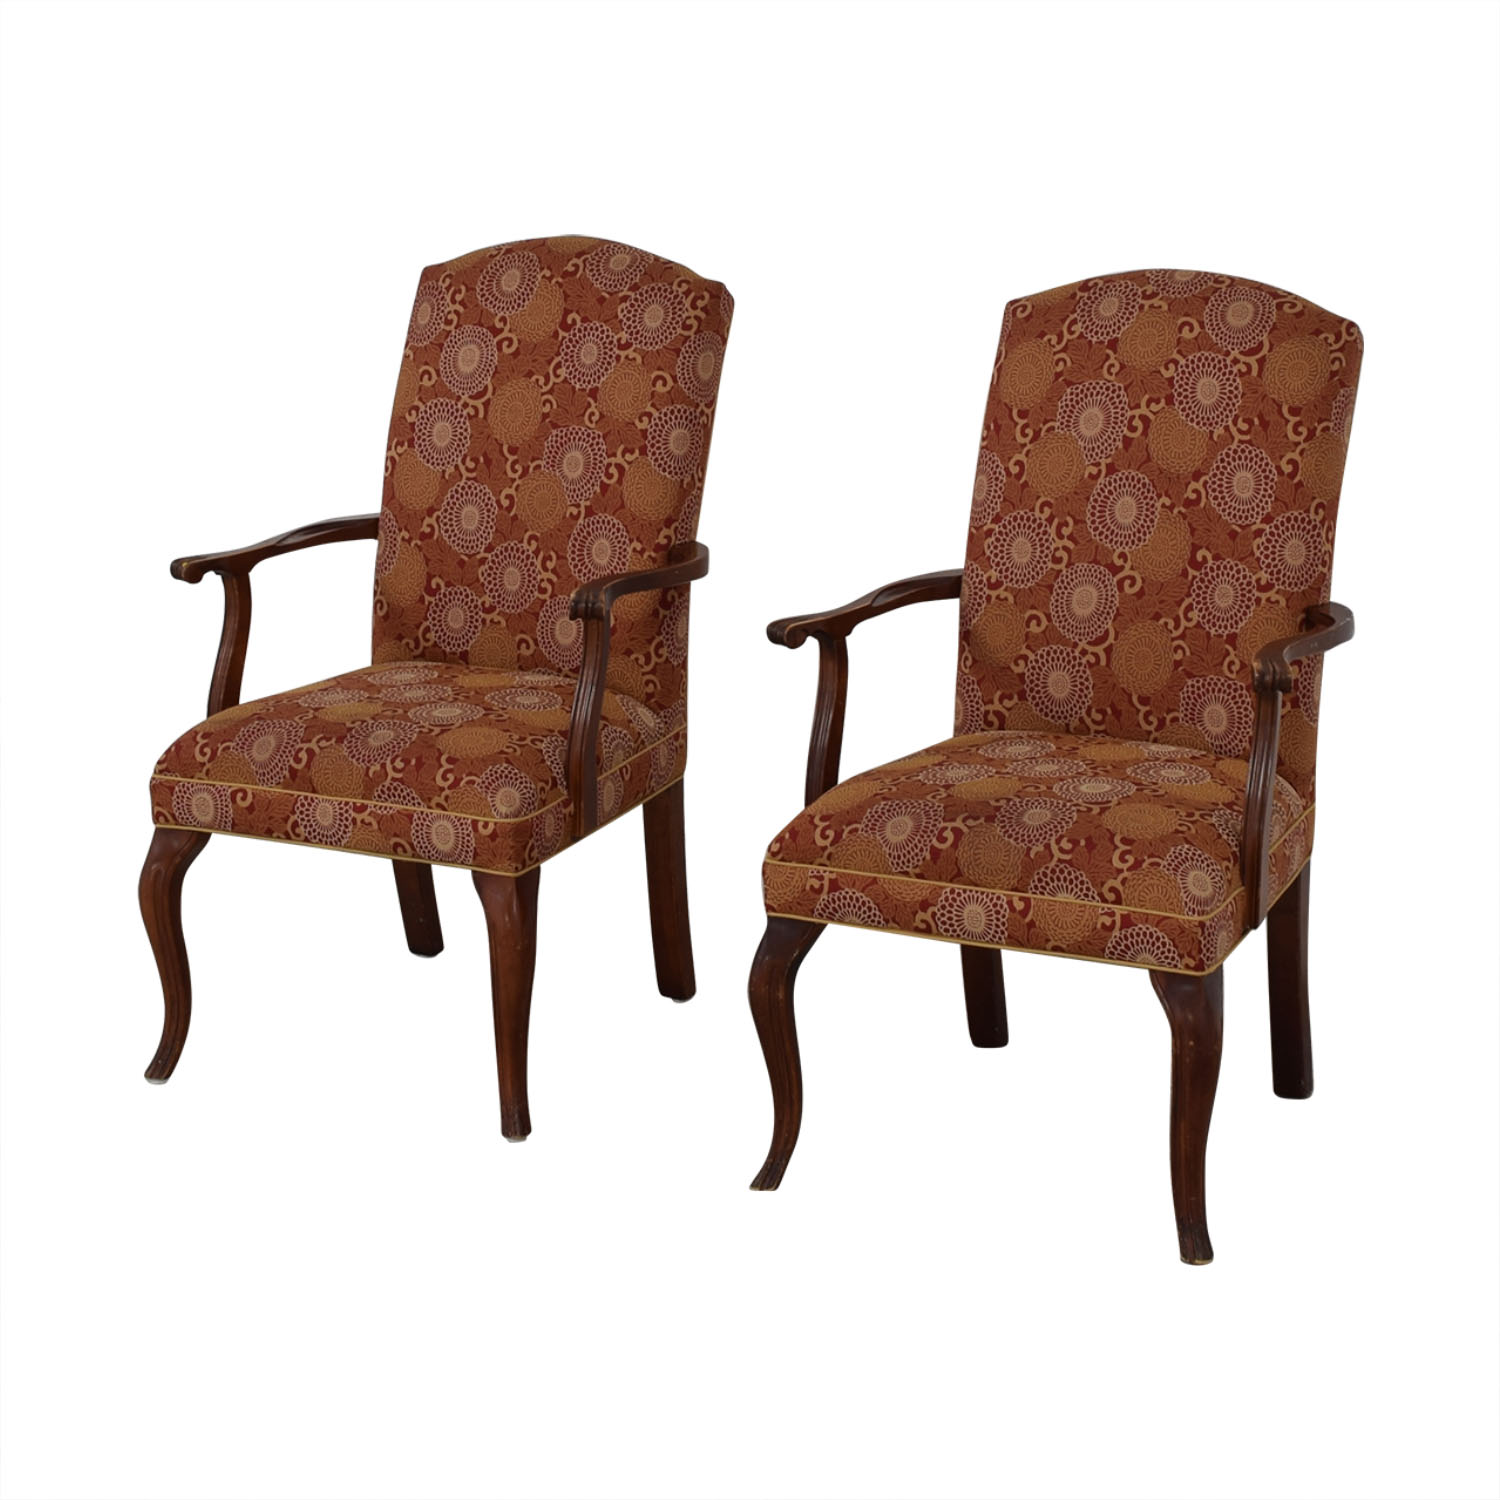 Ethan Allen Patterned Armchairs / Dining Chairs